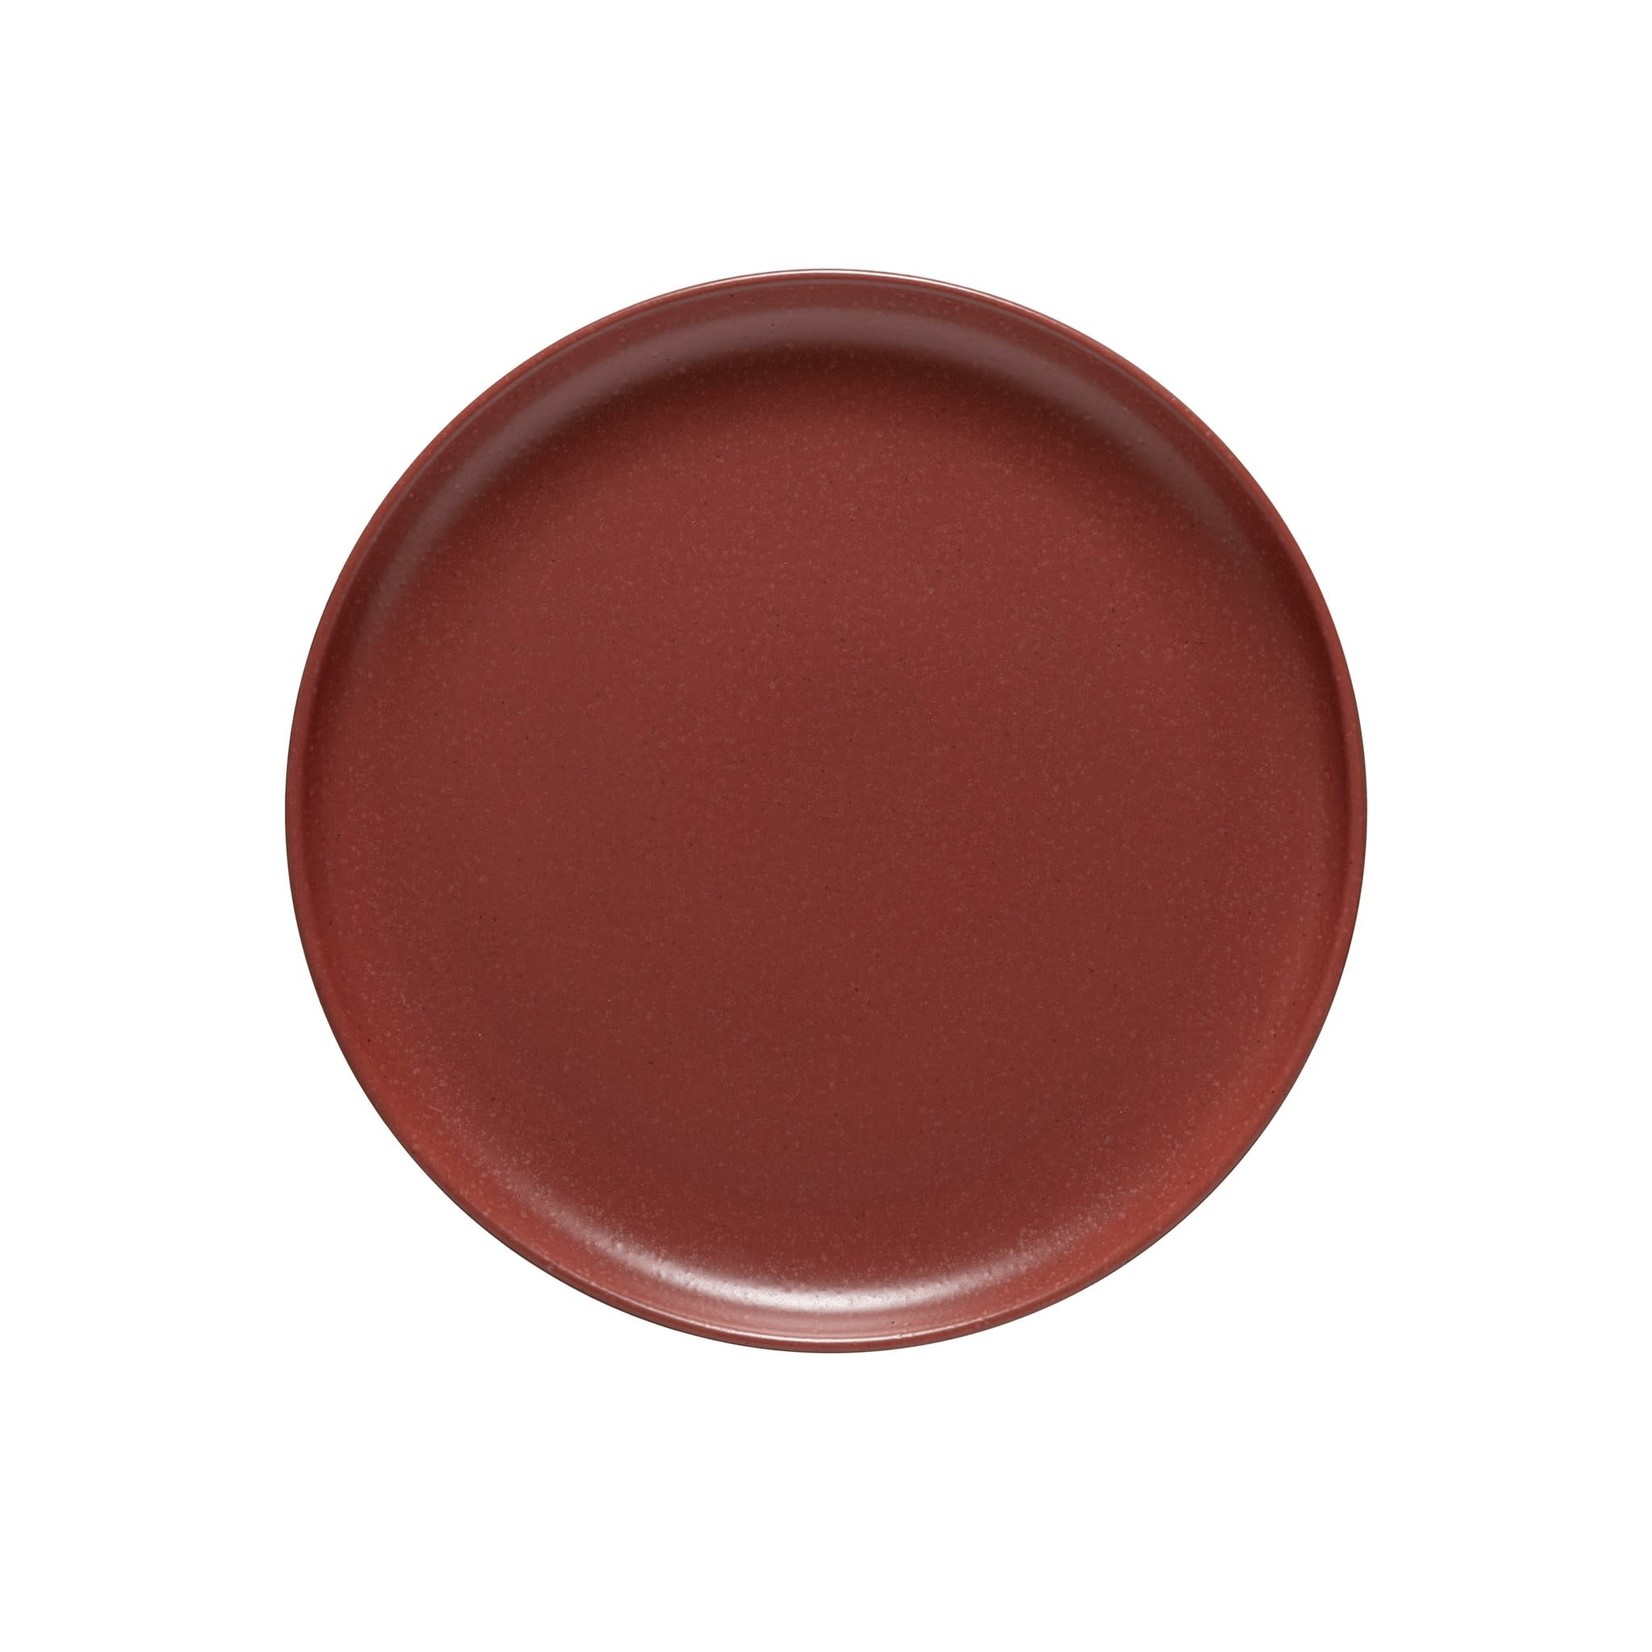 Pacifica Cayenne Dinner plate